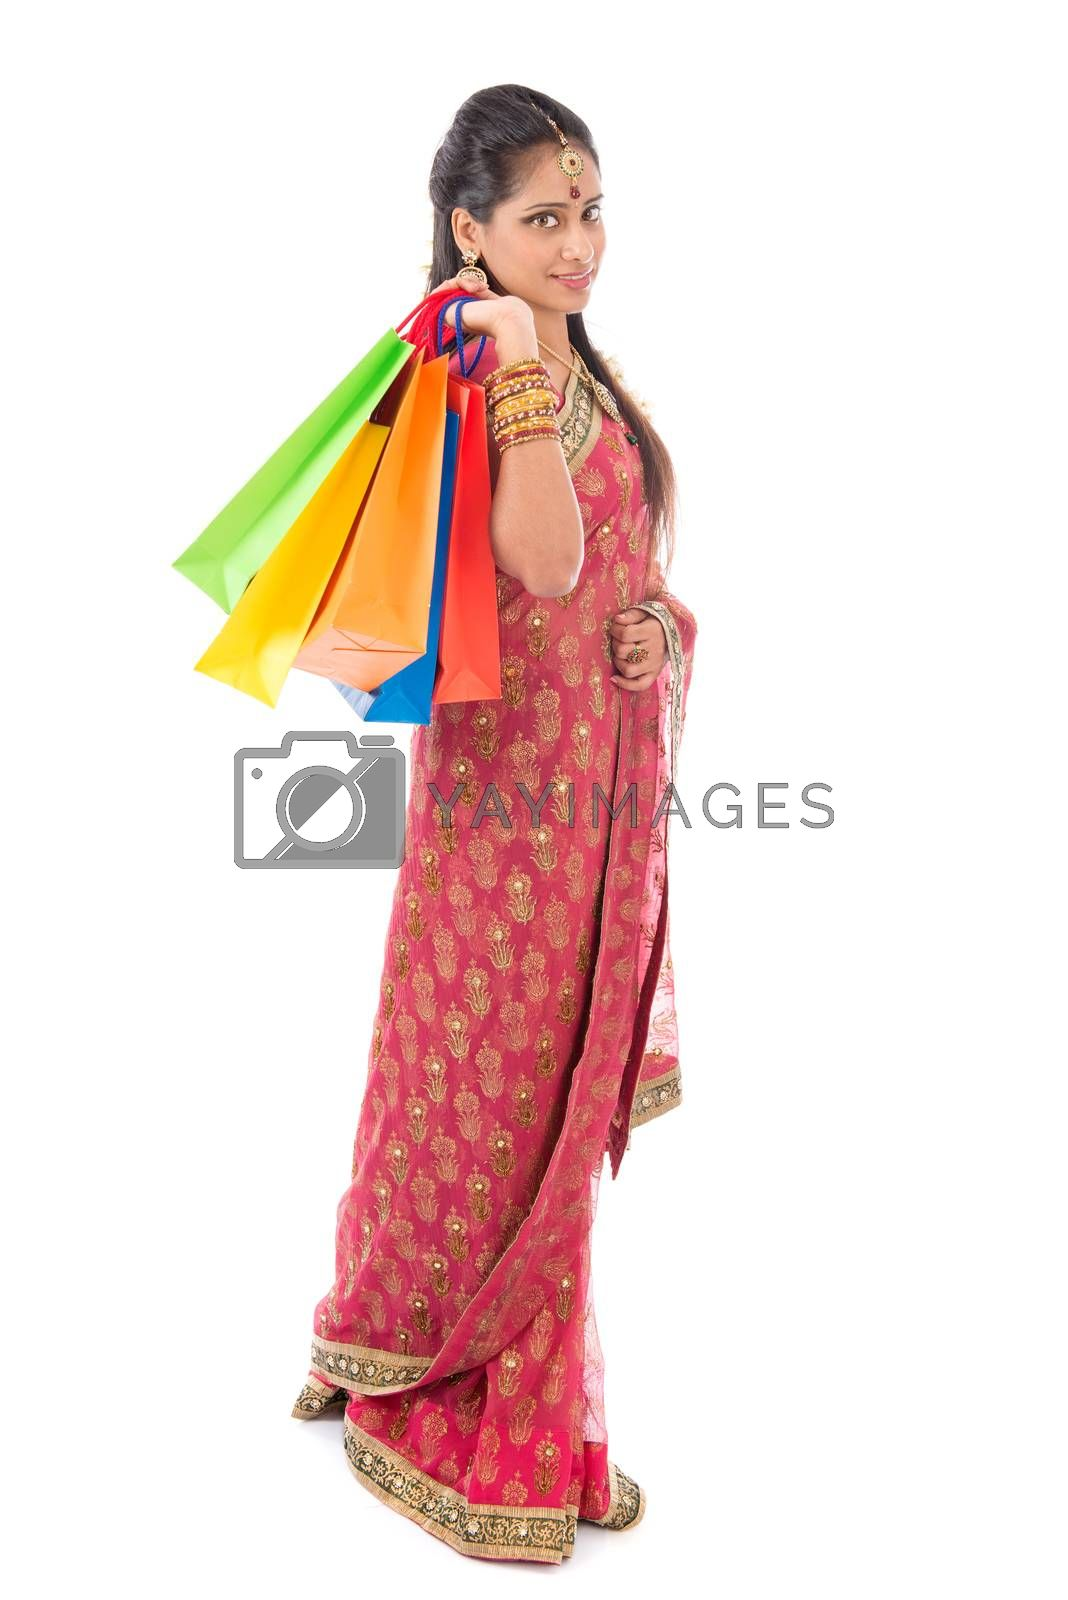 Indian people in traditional sari shopping for diwali festival, full length standing isolated on white background.